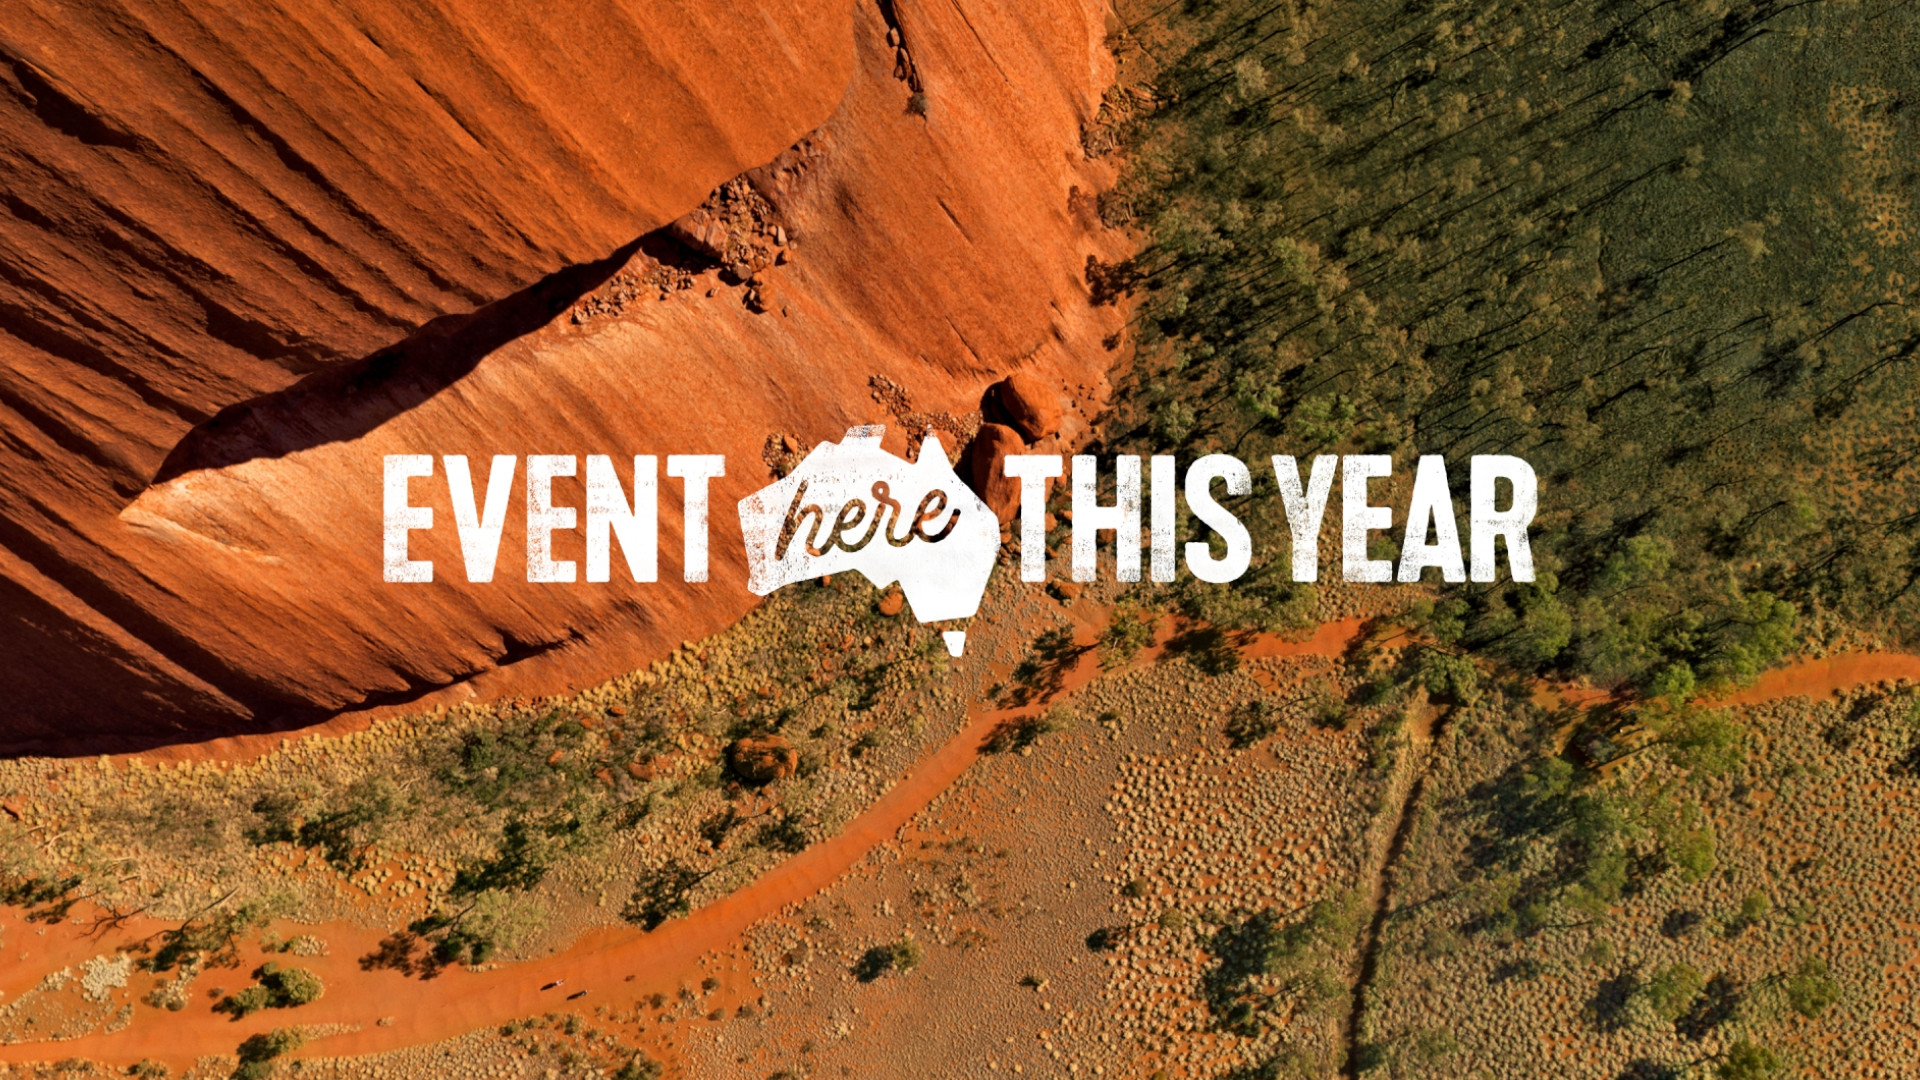 Event Here This Year, Tourism Australia